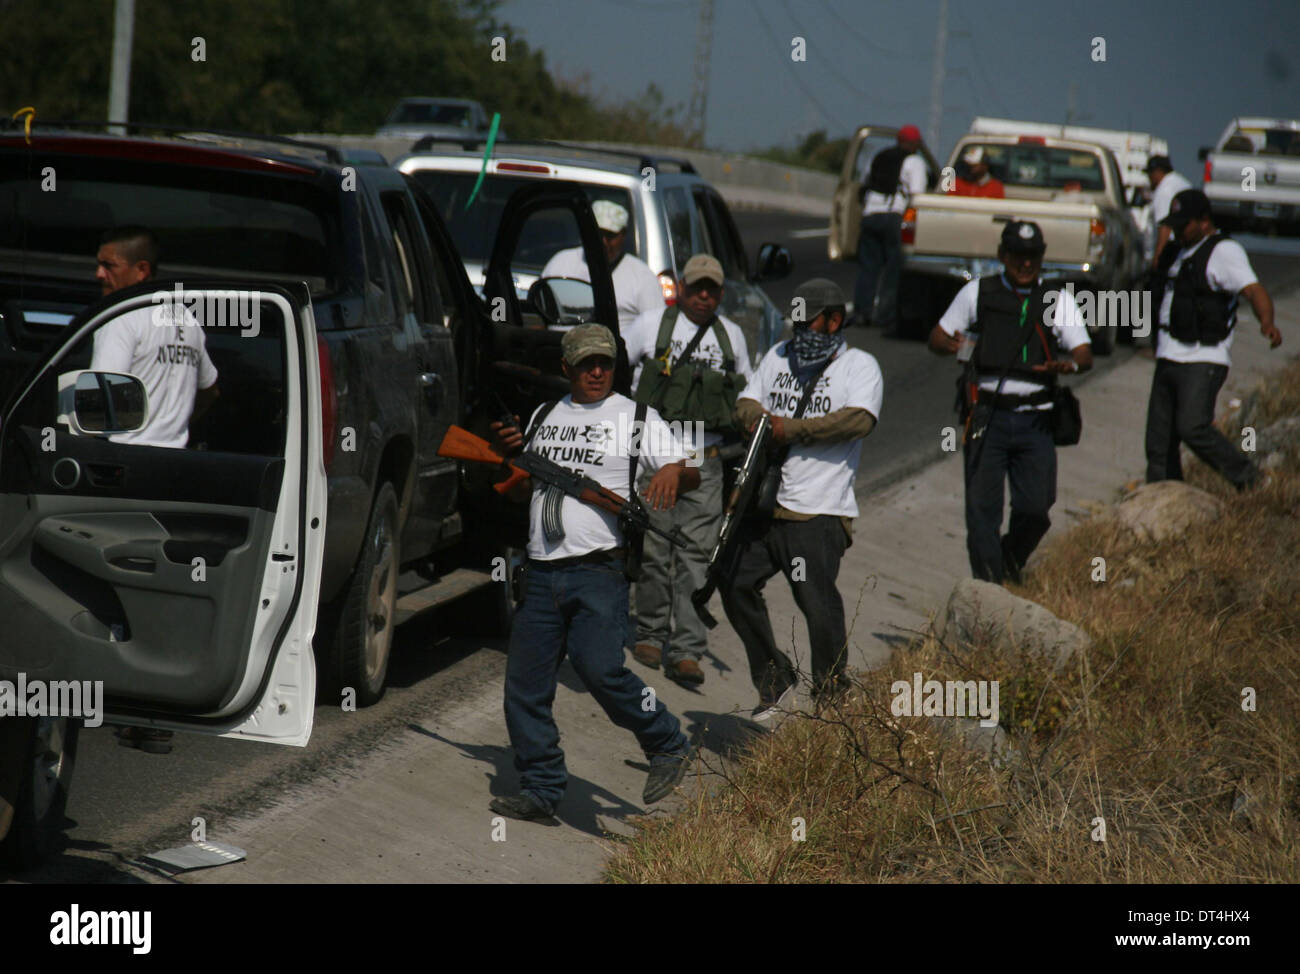 Michoacan, Mexico. 8th Feb, 2014. Members of self-defense groups react on their way to the municipality of Apatzingan, in Michoacan, Mexico, on Feb. 8, 2014. Members of self-defense groups entered Apatzingan on Saturday accompanied by the Mexican Army and Federal Police to take control of the town that has been affected by the actions of the criminal organization 'Los Caballeros Templarios', according to the local press. © Armando Solis/Xinhua/Alamy Live News - Stock Image